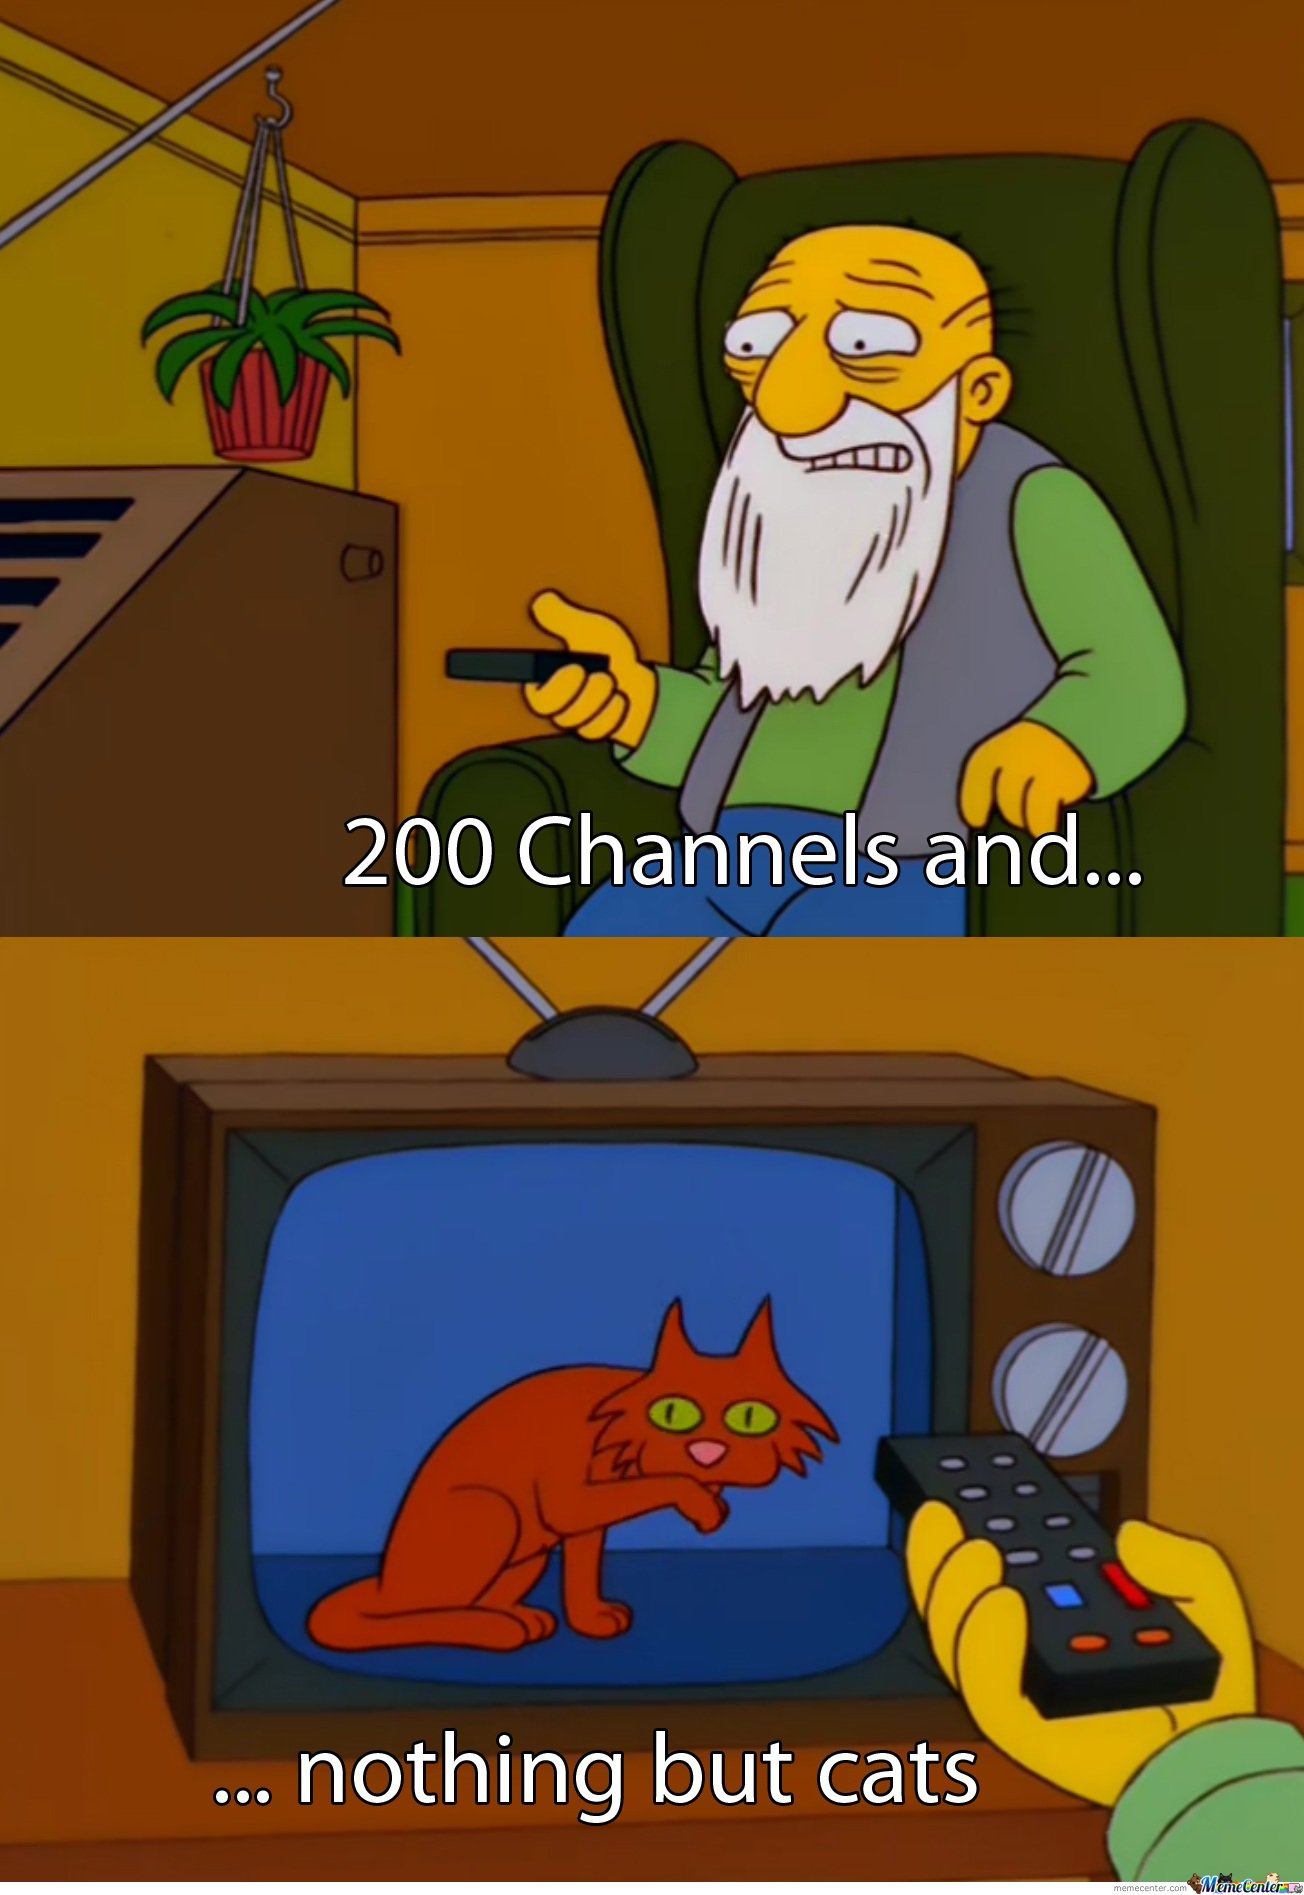 200 Channels and nothing but cats